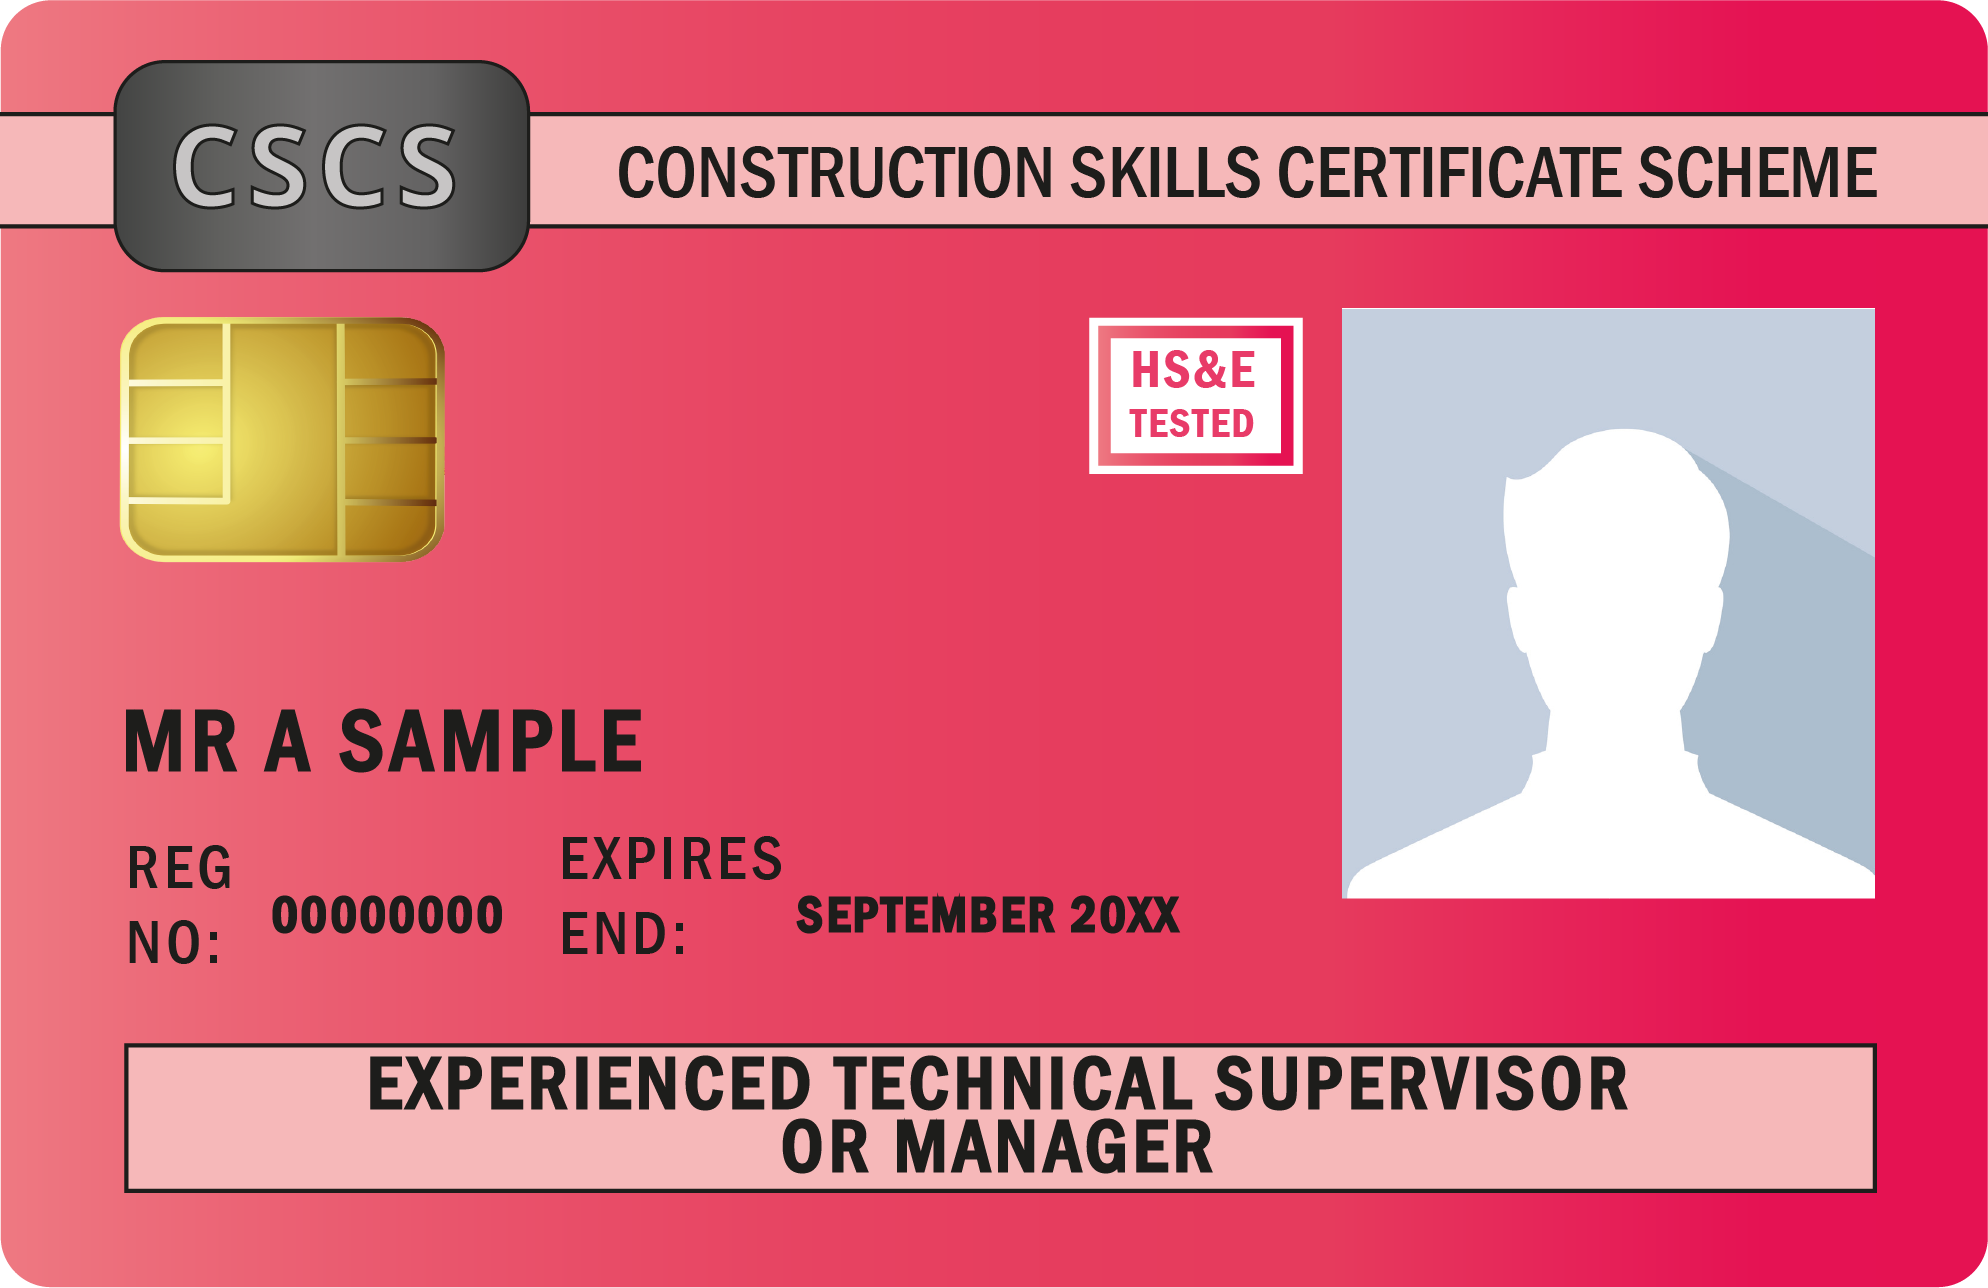 cscs-EXP-TS-OR-M-01